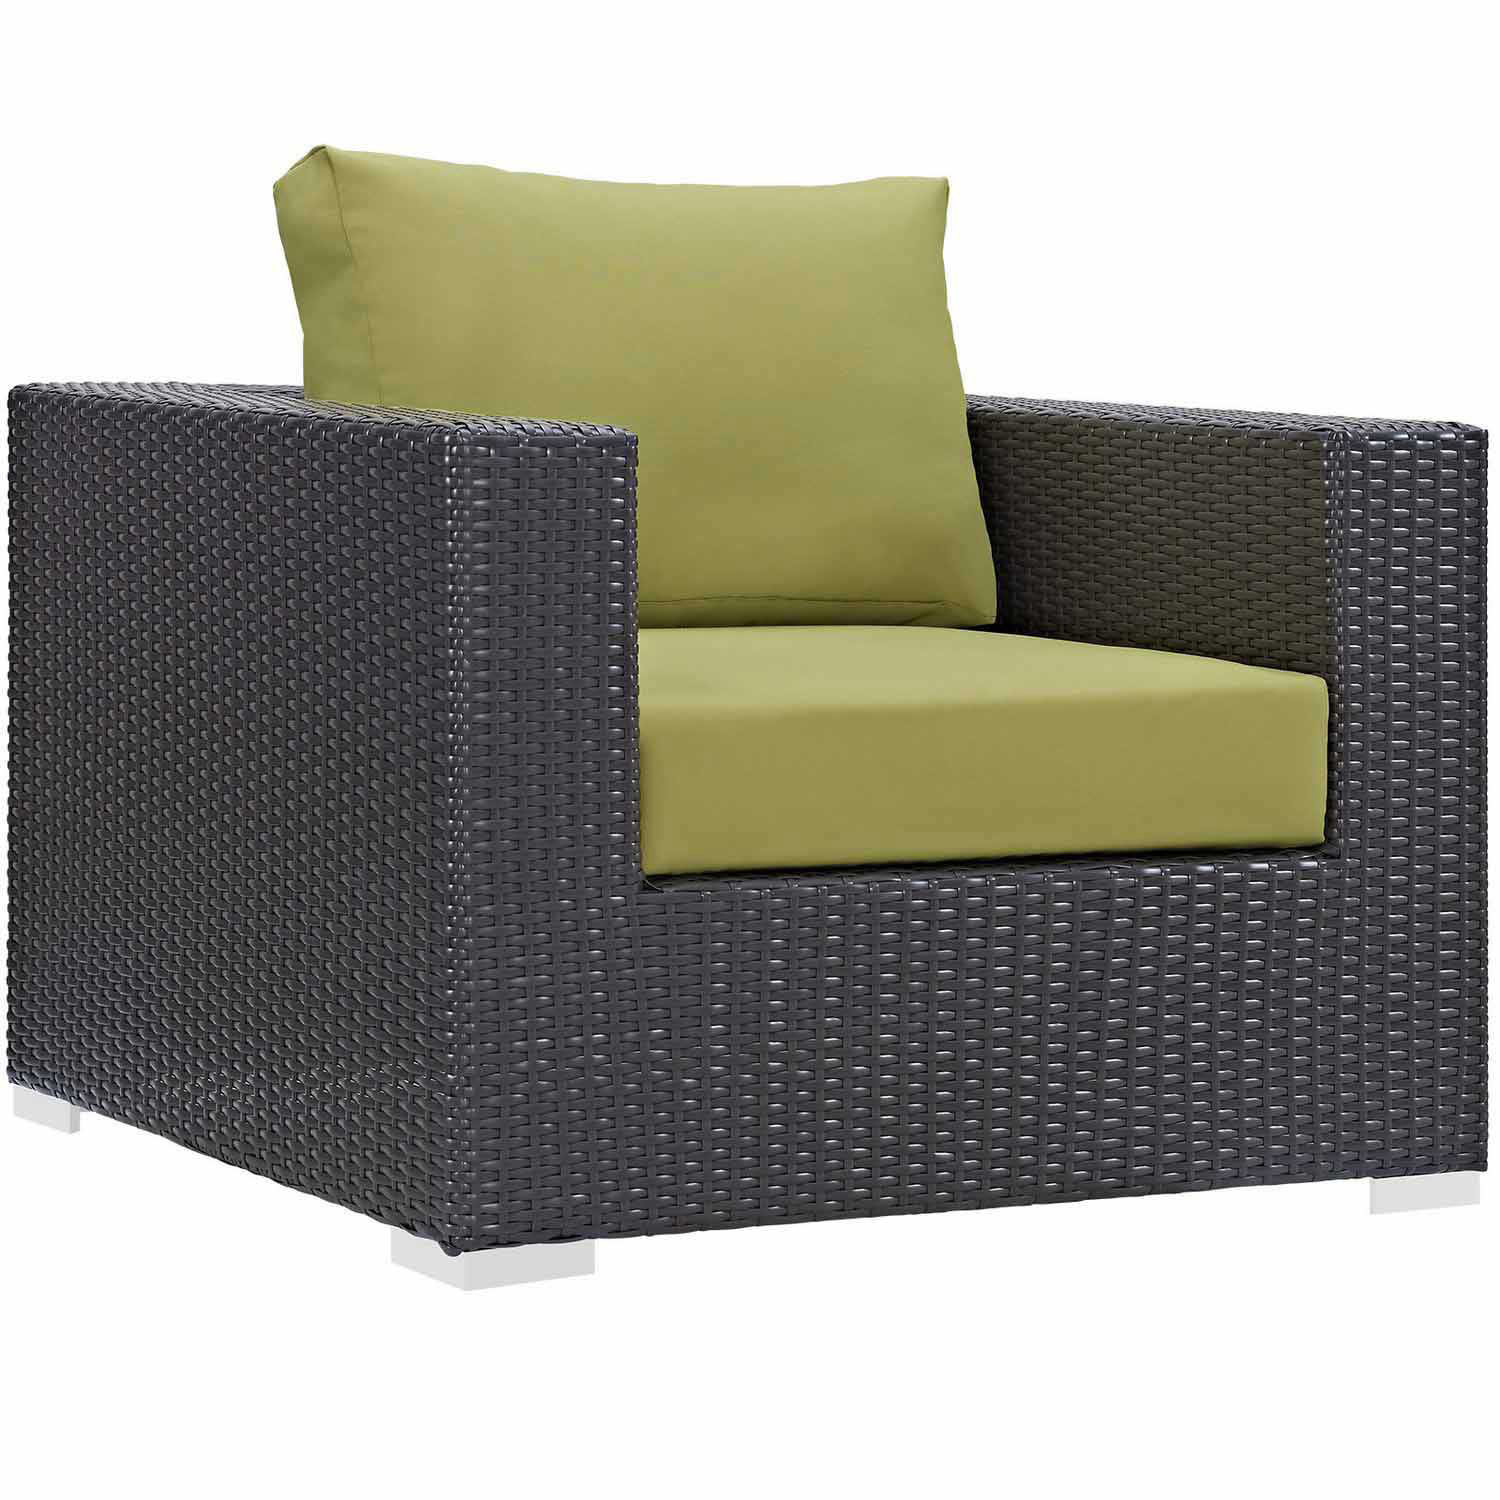 Modway Convene Outdoor Patio Arm Chair - Espresso Peridot